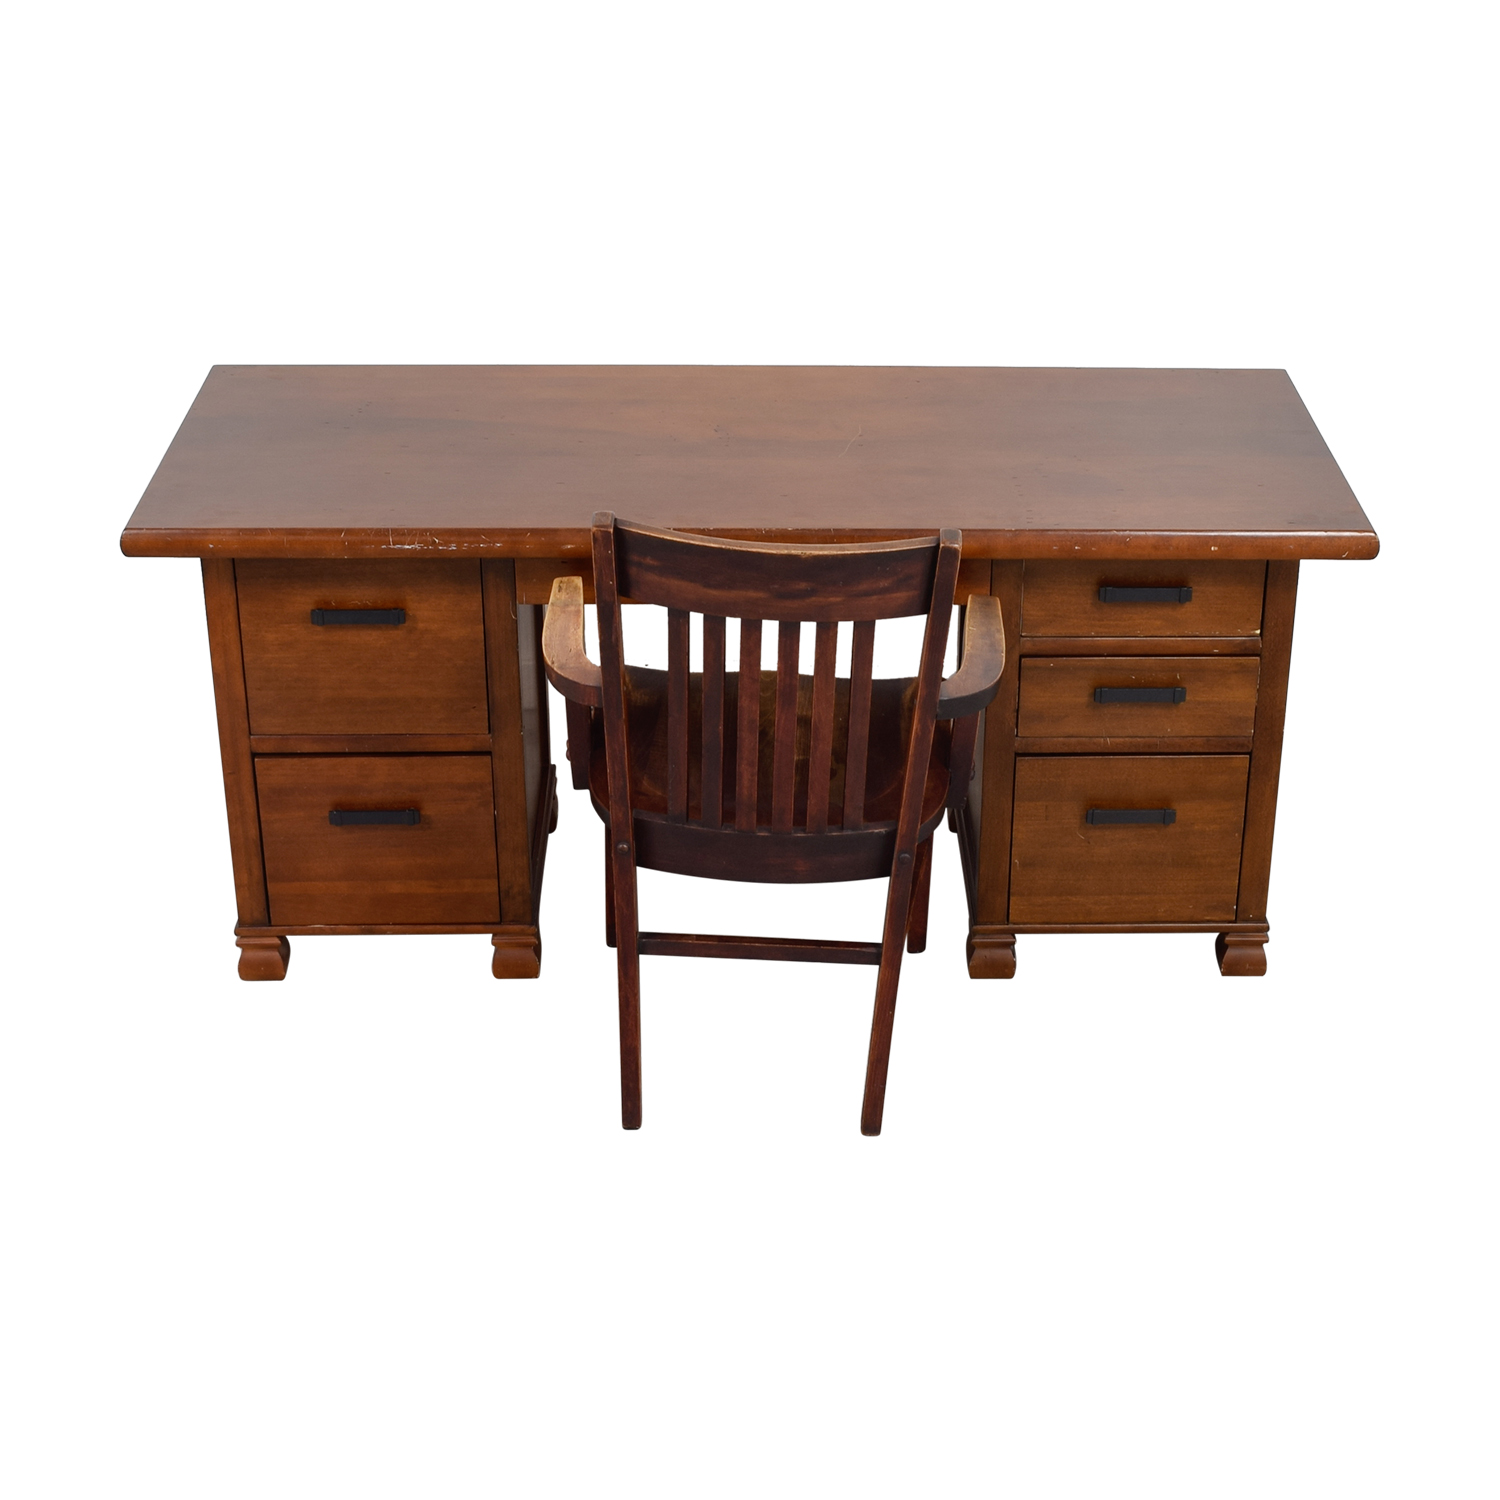 90 Off Pottery Barn Pottery Barn Wooden Cherry Desk With Chair